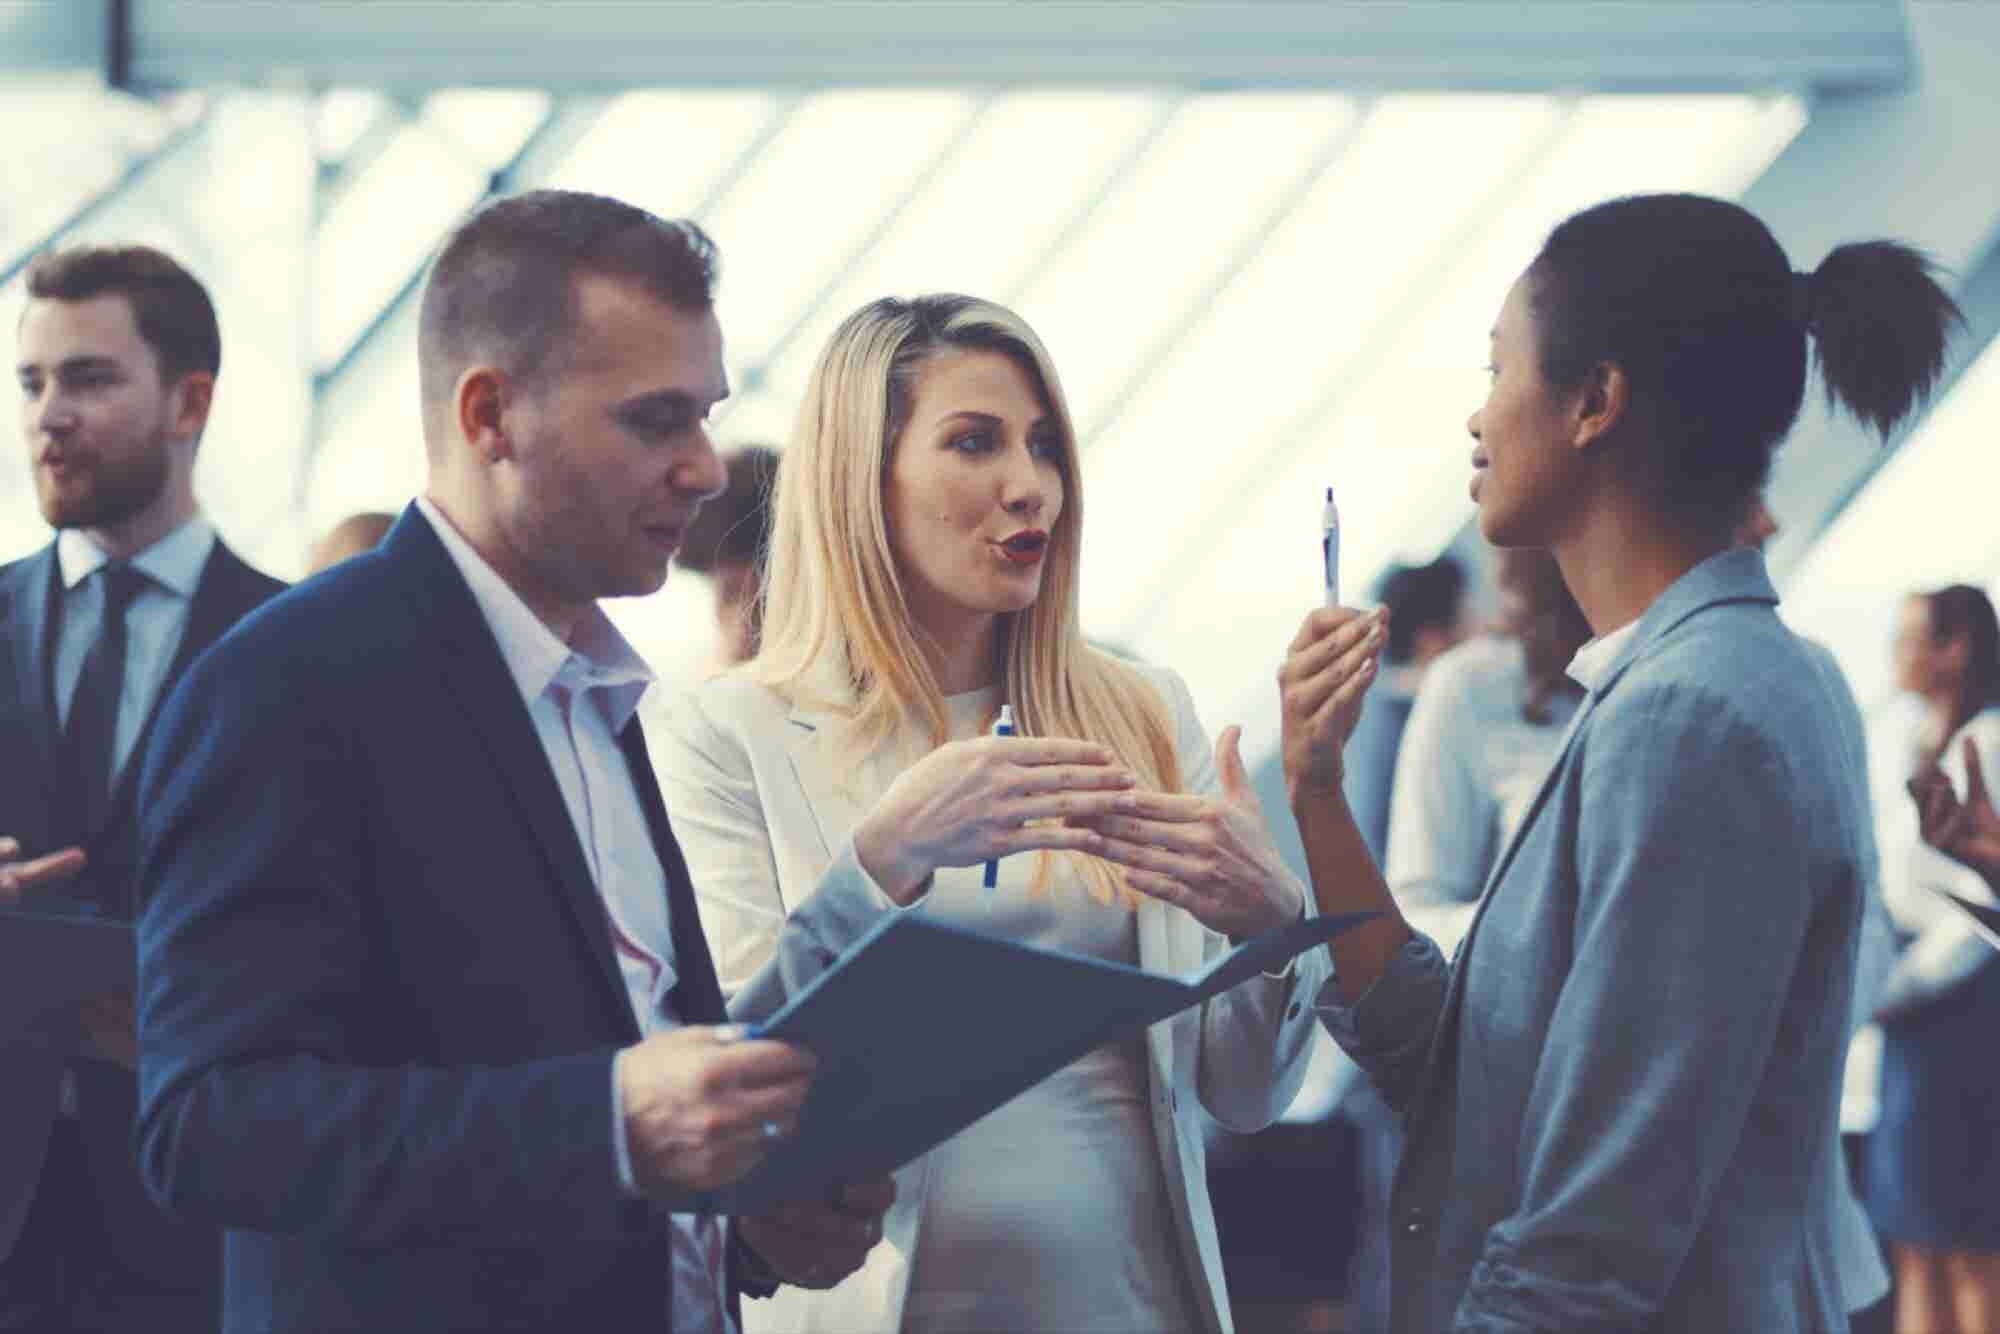 The 5 Types of Business Networking Organizations